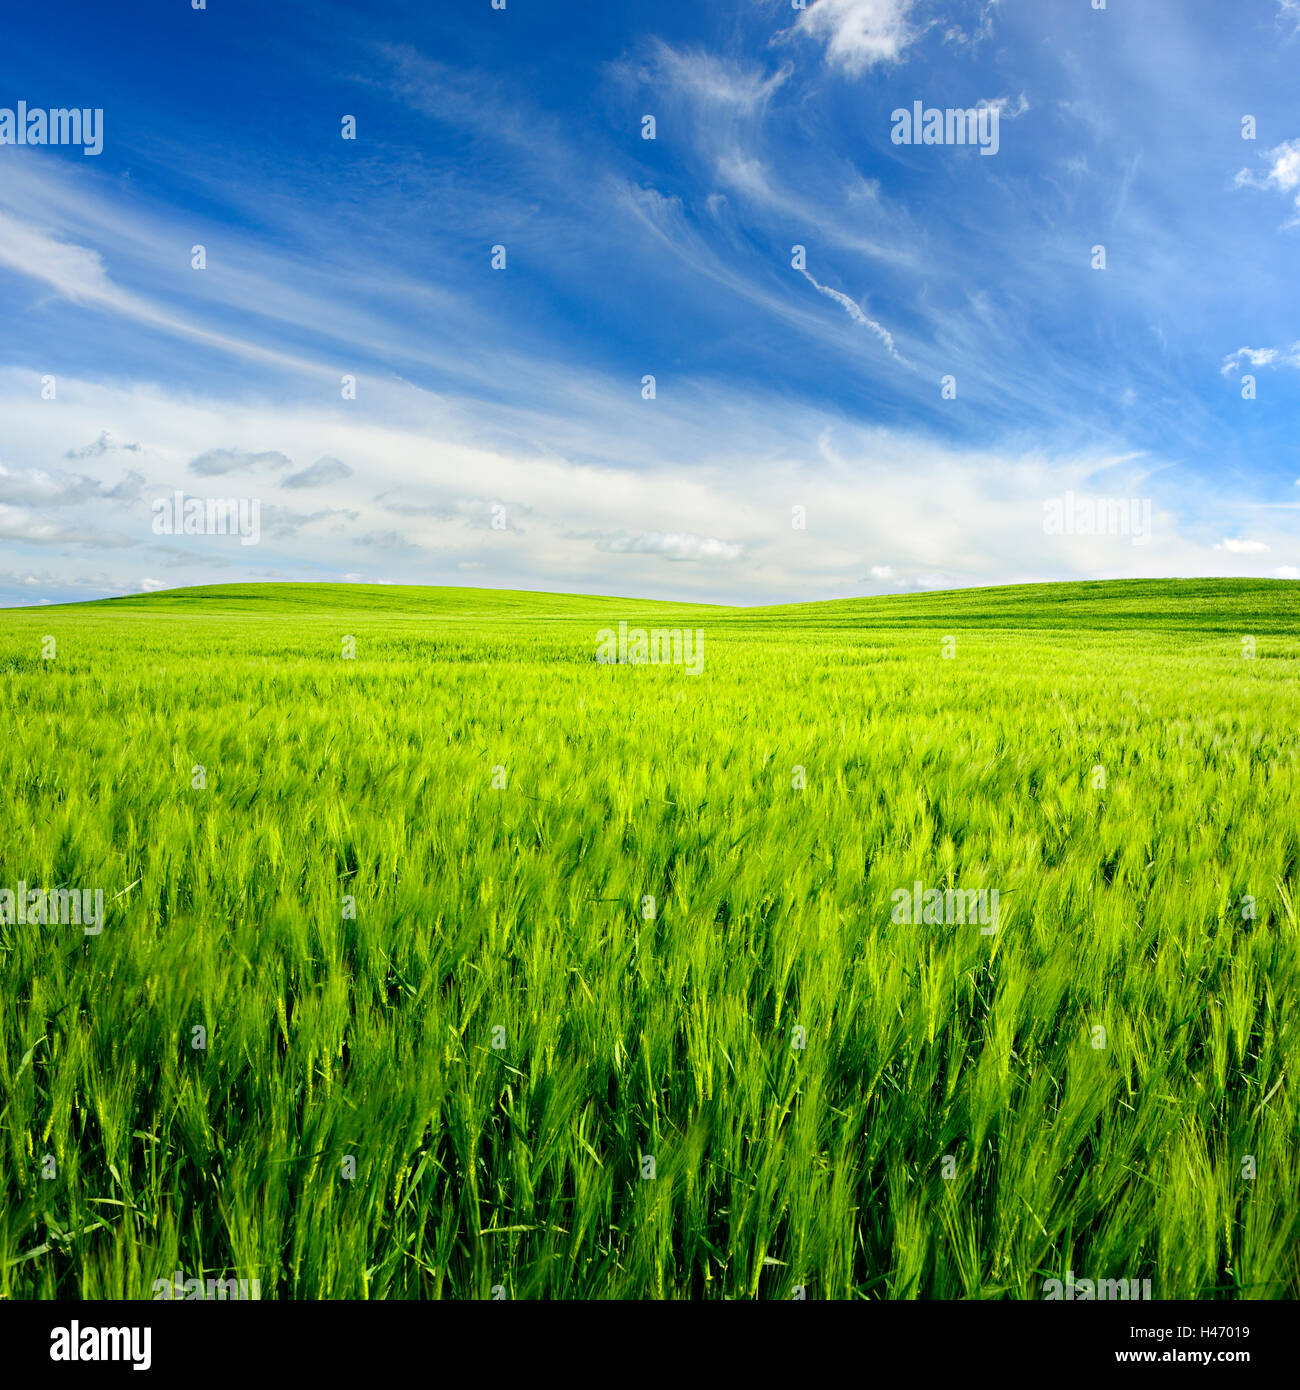 Green field with barley under blue sky in spring, Saxony Anhalt, Germany - Stock Image